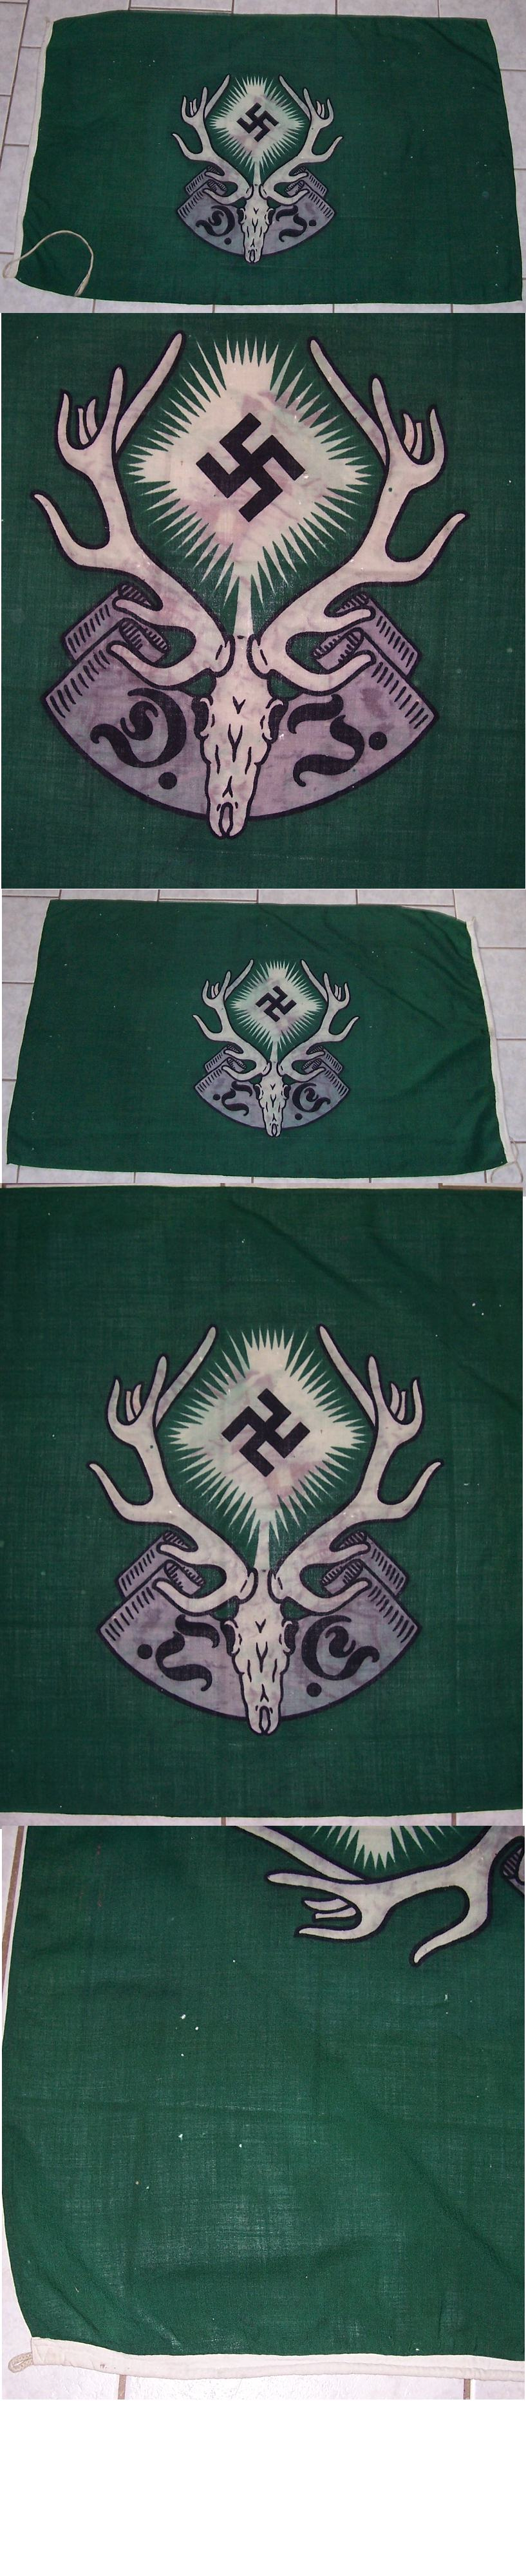 DJ German Hunting Association Flag